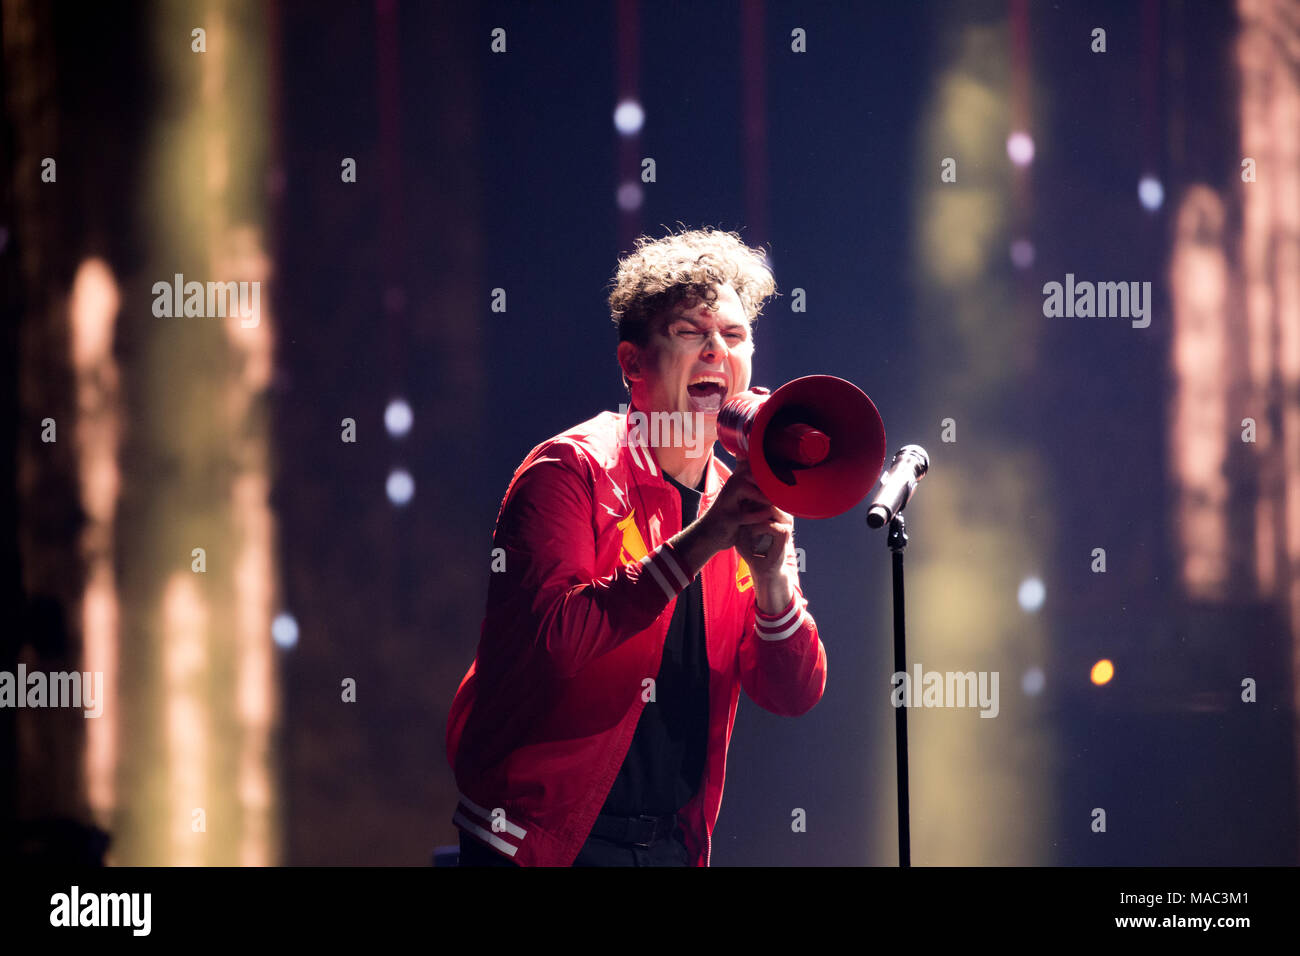 Vancouver, CANADA. 26th March, 2018. Arkells perform 'Knocking At The Door' at the 2018 Juno Awards in Vancouver. Credit: Bobby Singh/fohphoto - Stock Image